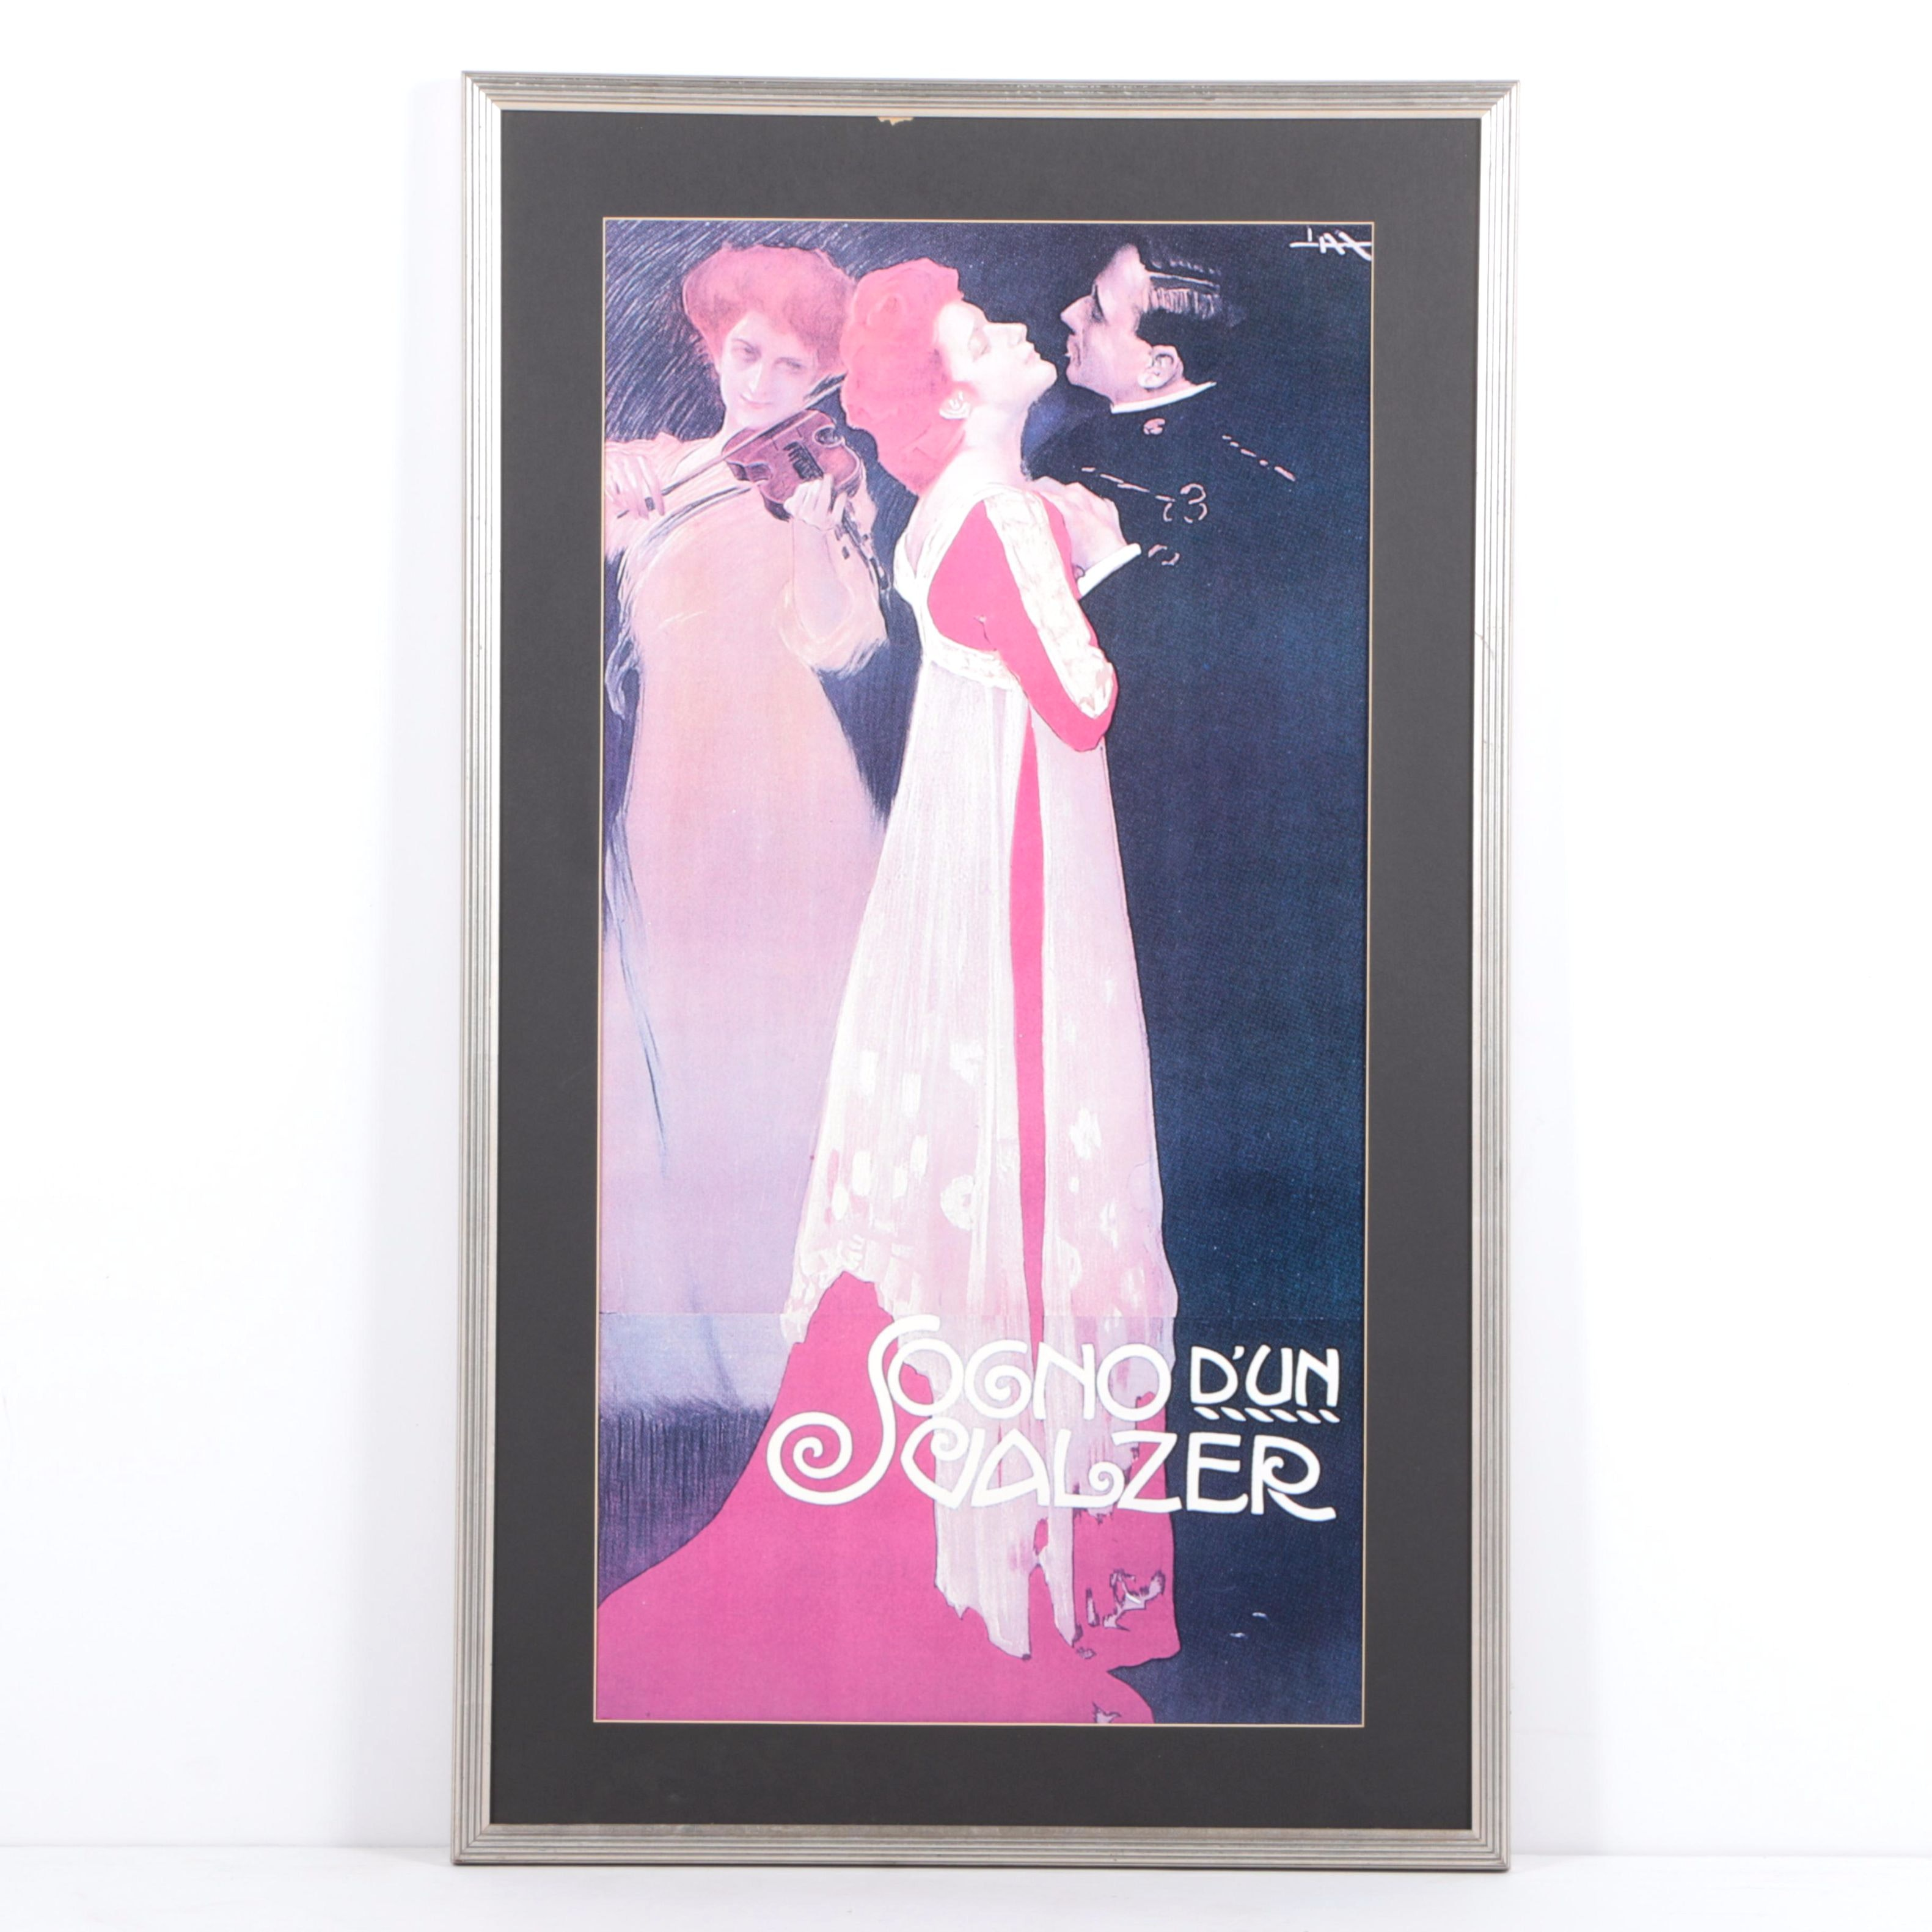 "Offset Lithograph Poster After Leopoldo Metlicovitz's ""Sogno d'un Valzer"""